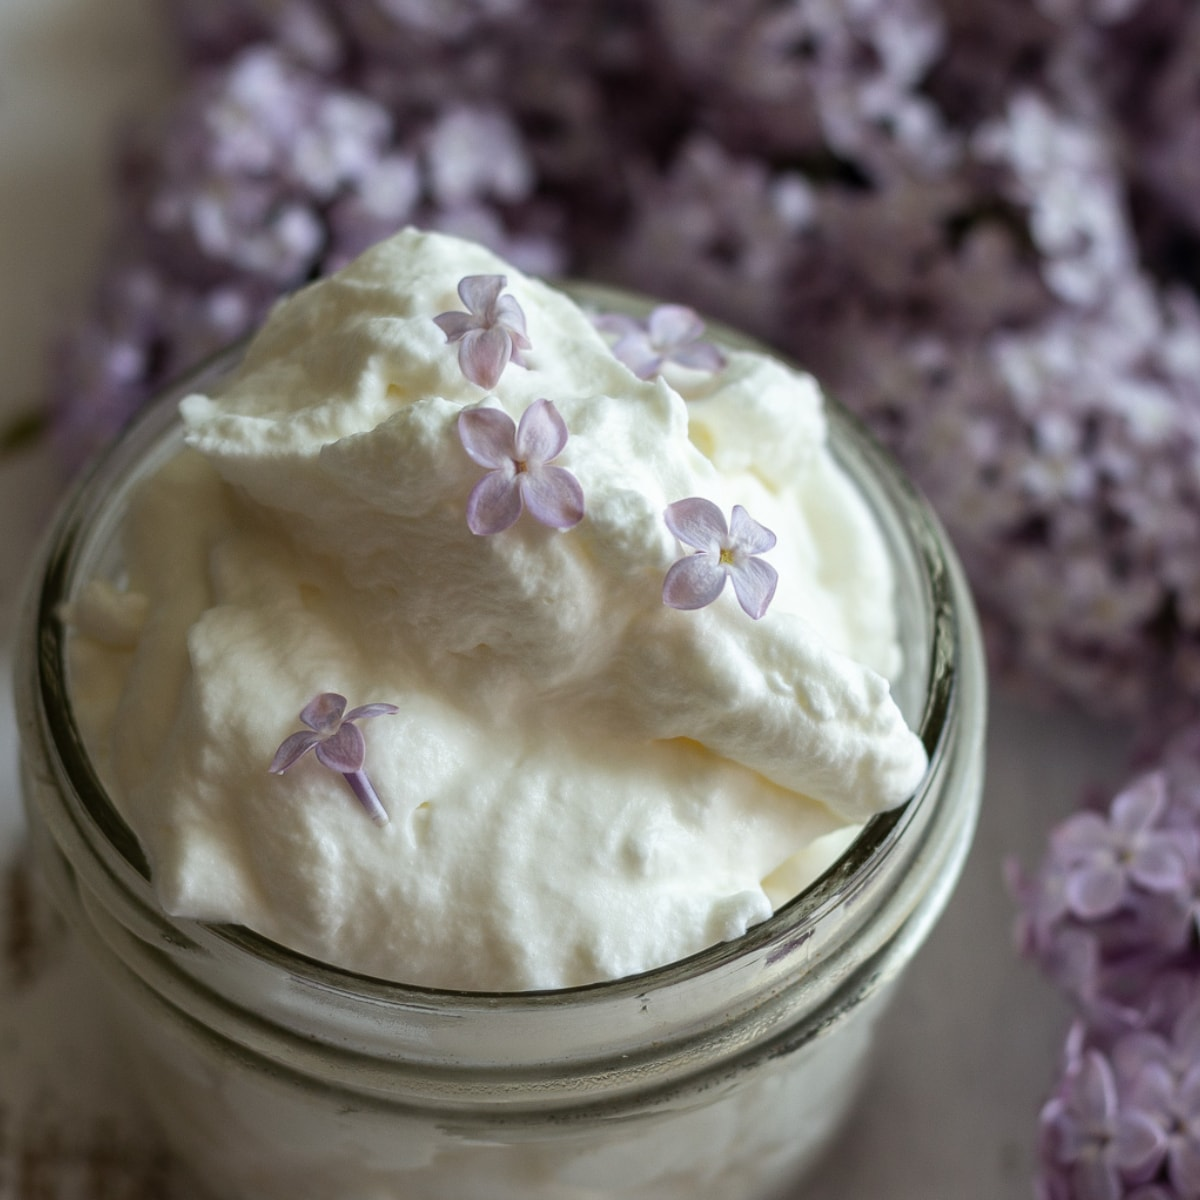 Small glass mason jar holding whipped cream with purple lilacs in background.